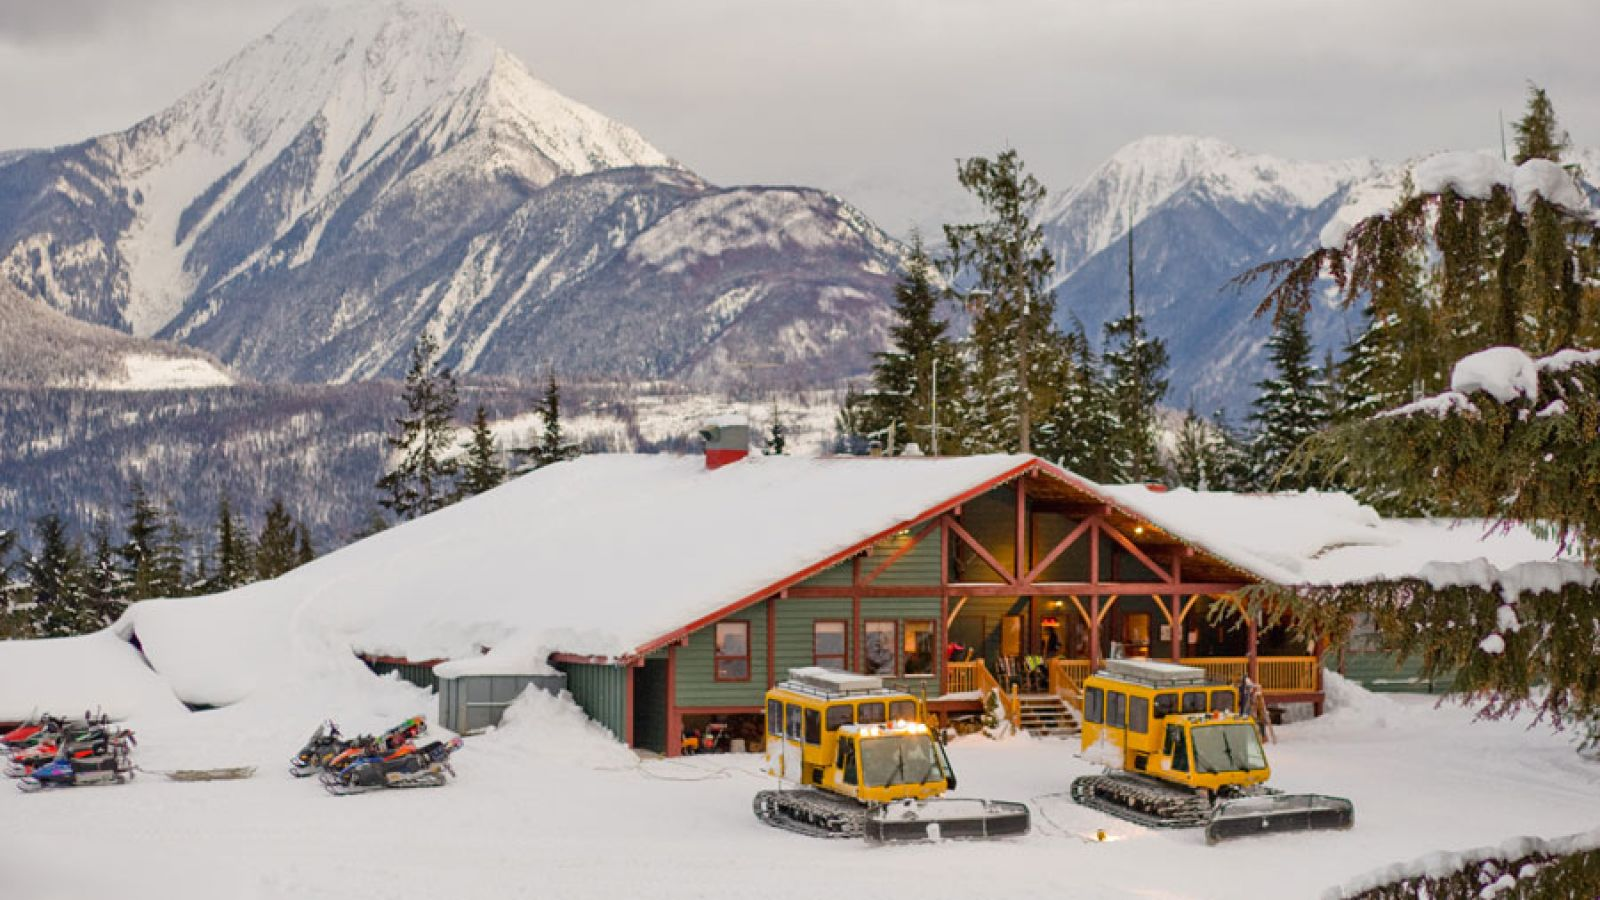 Guests are taken by snowcat to a private lodge at 4,200 ft.